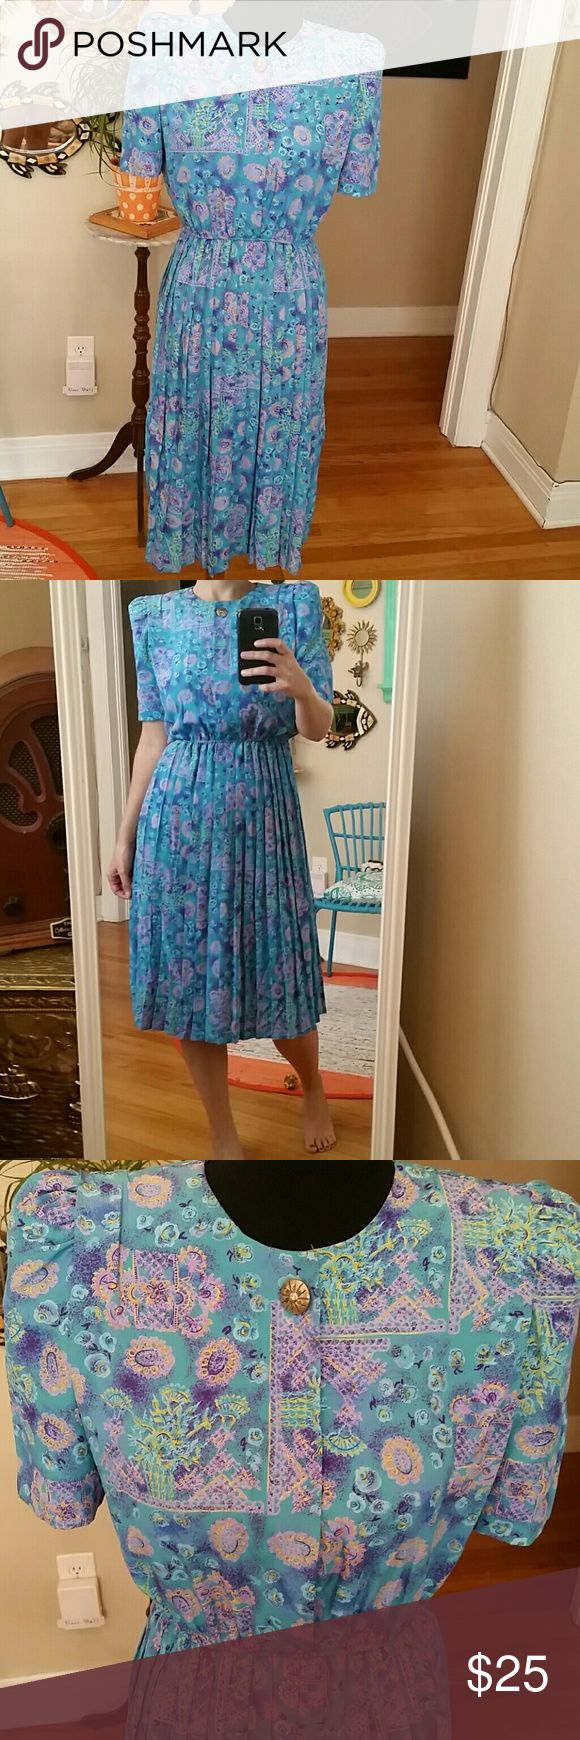 VTG Lady Carol Blue Pleaded Dress! Size 6!♡ Love love love this Lady Carol Petite dress! Pleaded skirt w/an elastic waist and strings for a belt around waist. Shoulder pads (can be easily taken out). Gorgeous gold button and 3 clear buttons down the front w/a small clasp on top. Would best fit a S/M 4-8. 100% polyestor, very light & flowy. Gorgeous bright aqua blues, purples, yellows and pinks. 1 of a kind vintage dress!♡ Vintage Dresses Midi